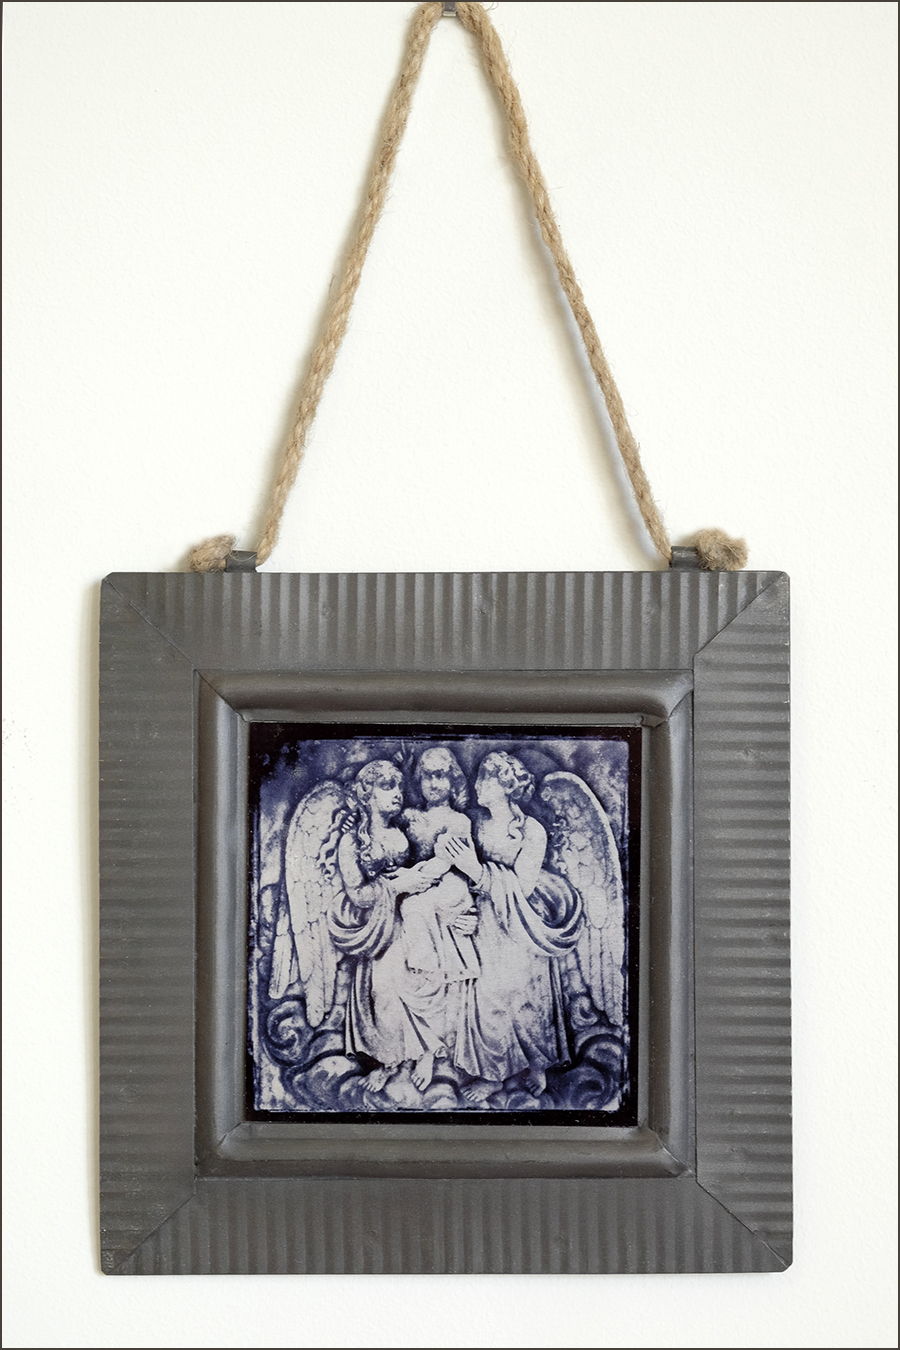 three angels 4 x 4 inch print on metal